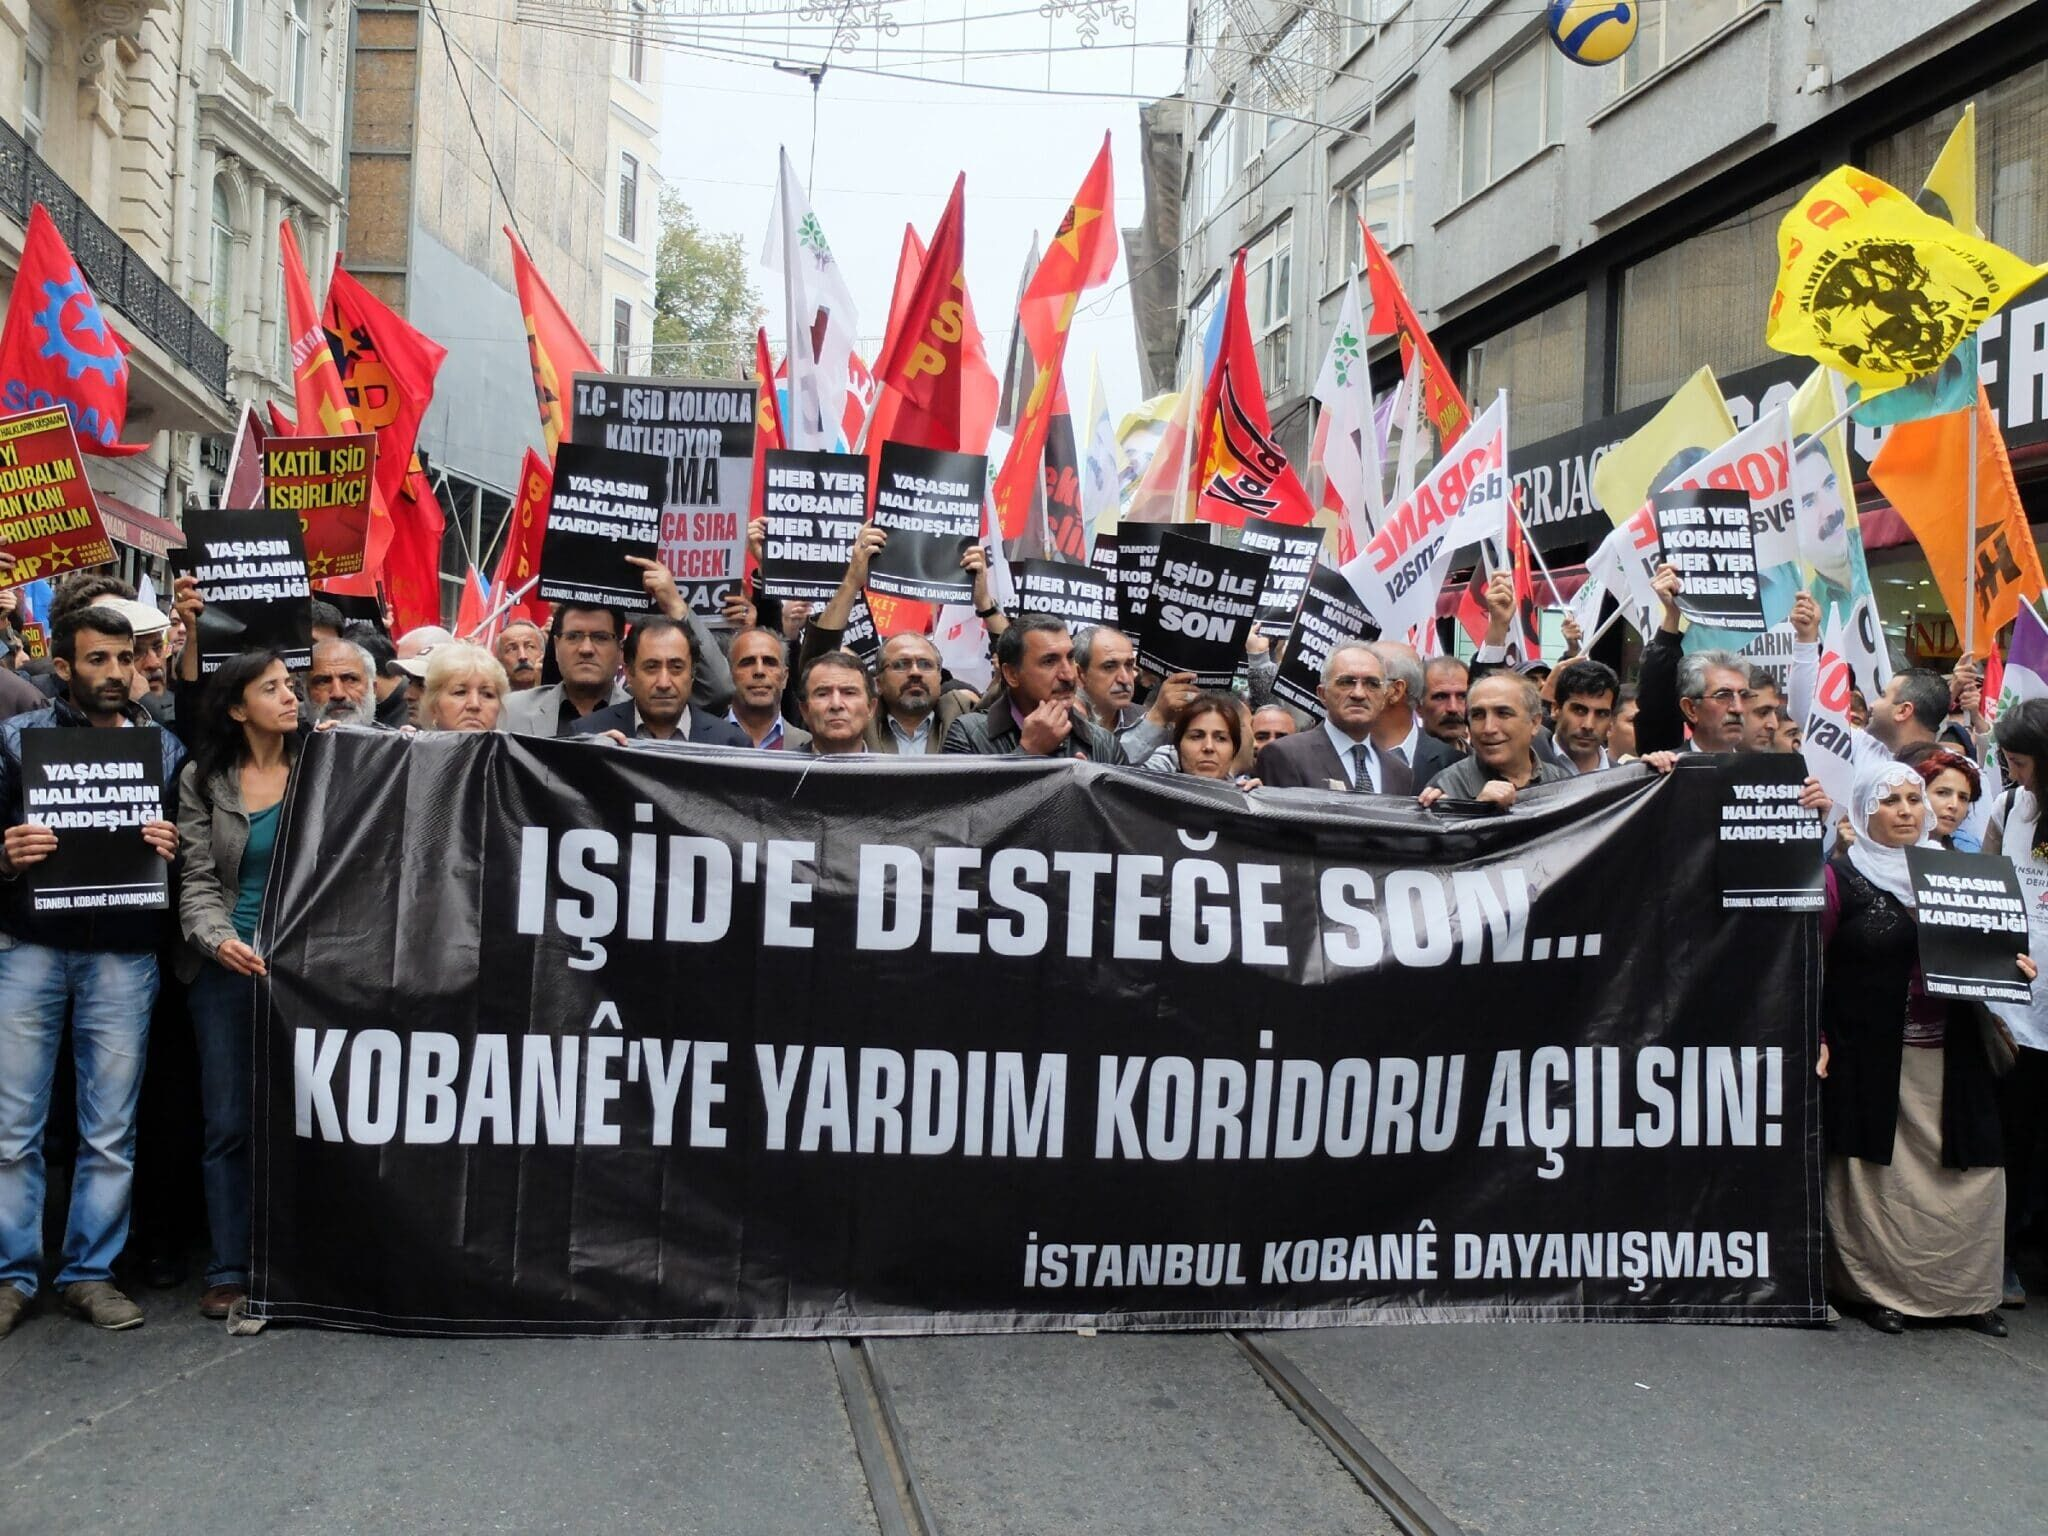 Thousands of Kurds protest in Istanbul over Islamic State attacks on Kobane, October 2014 /Photo Corbis